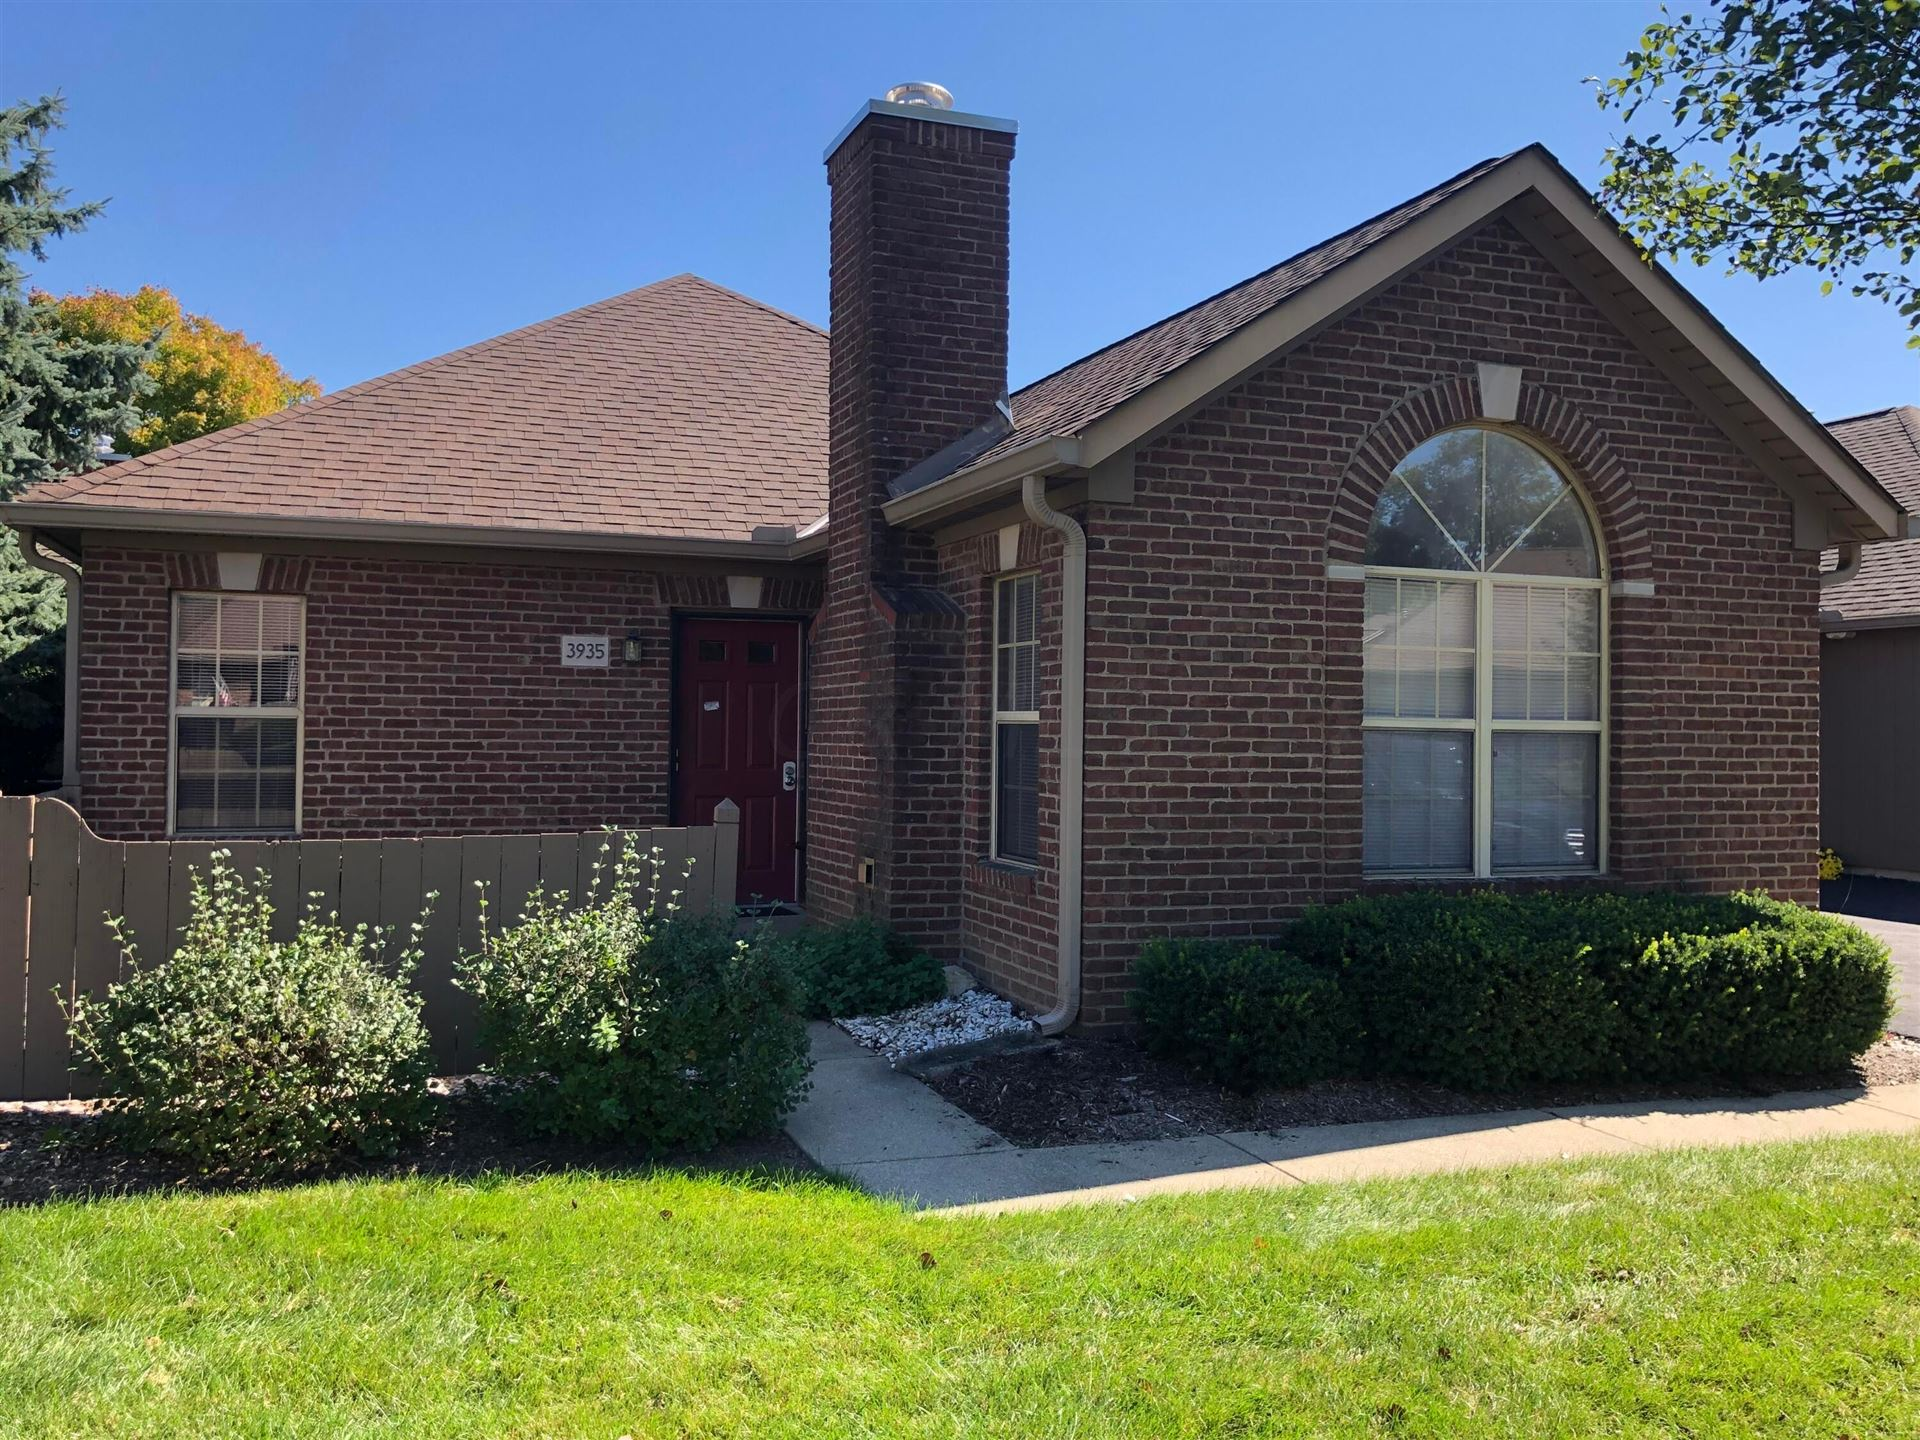 Photo of 3935 Ivygate Place, Dublin, OH 43016 (MLS # 221039998)